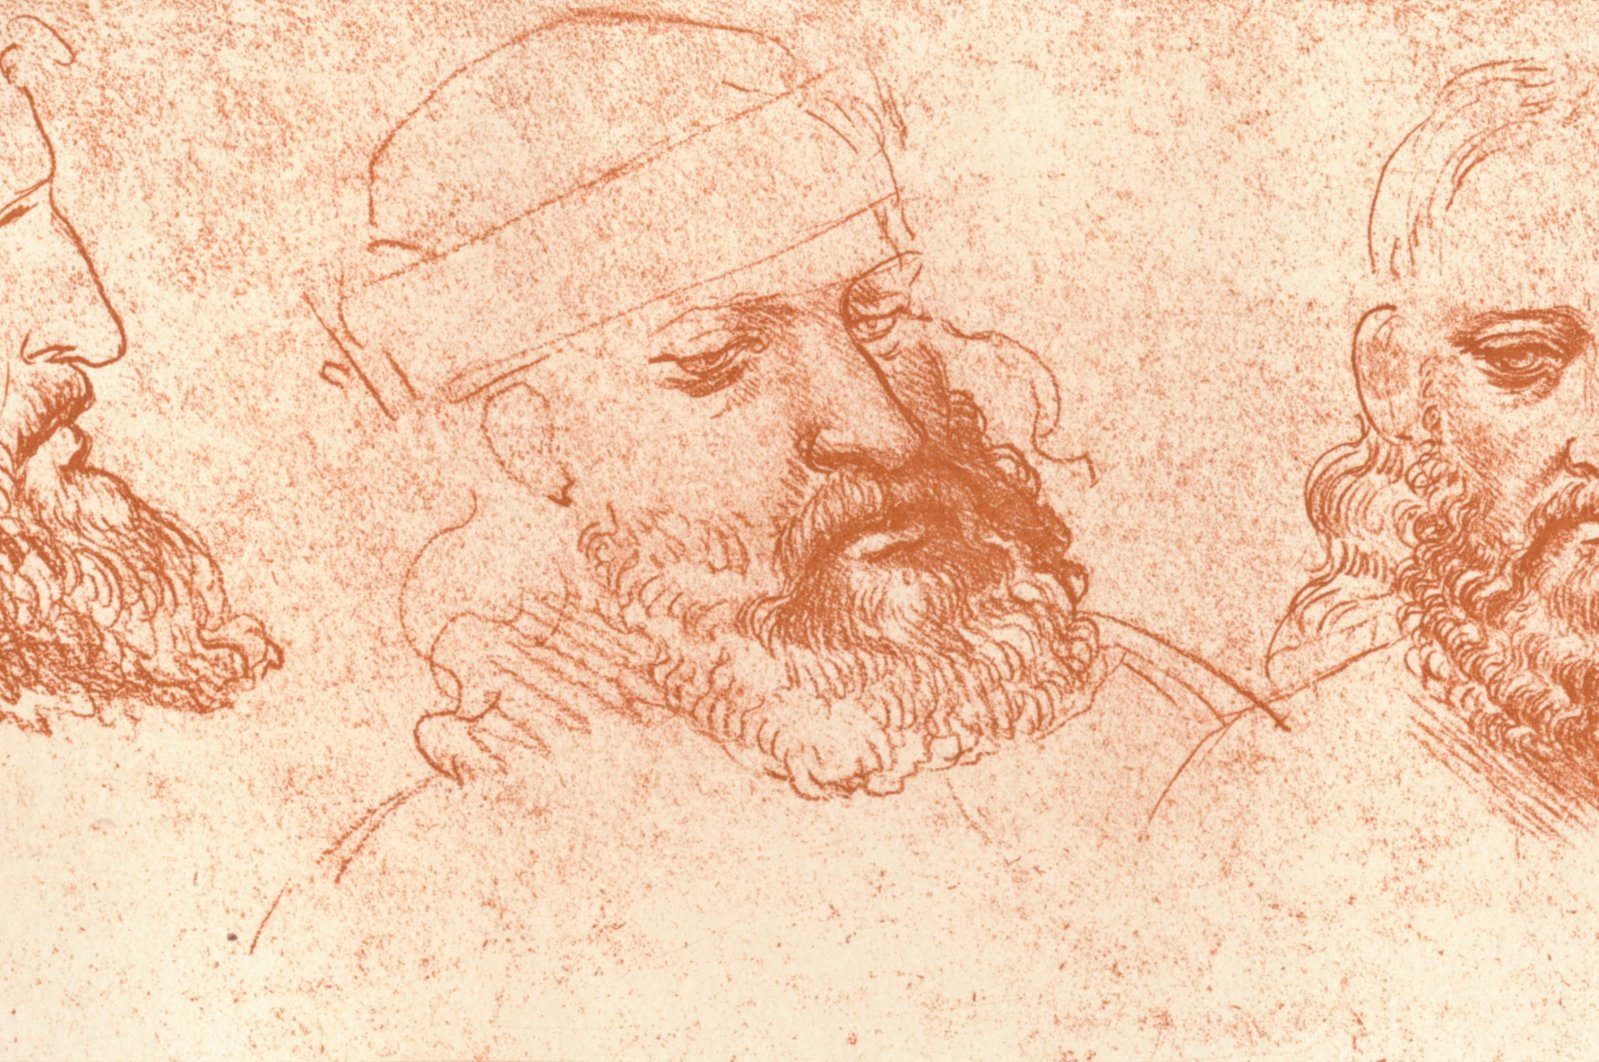 """Drawing of oriental heads in red chalk from """"The Literary Works of Leonardo Da Vinci Vol. II"""" by Jean Paul Richter. (Getty Images)"""